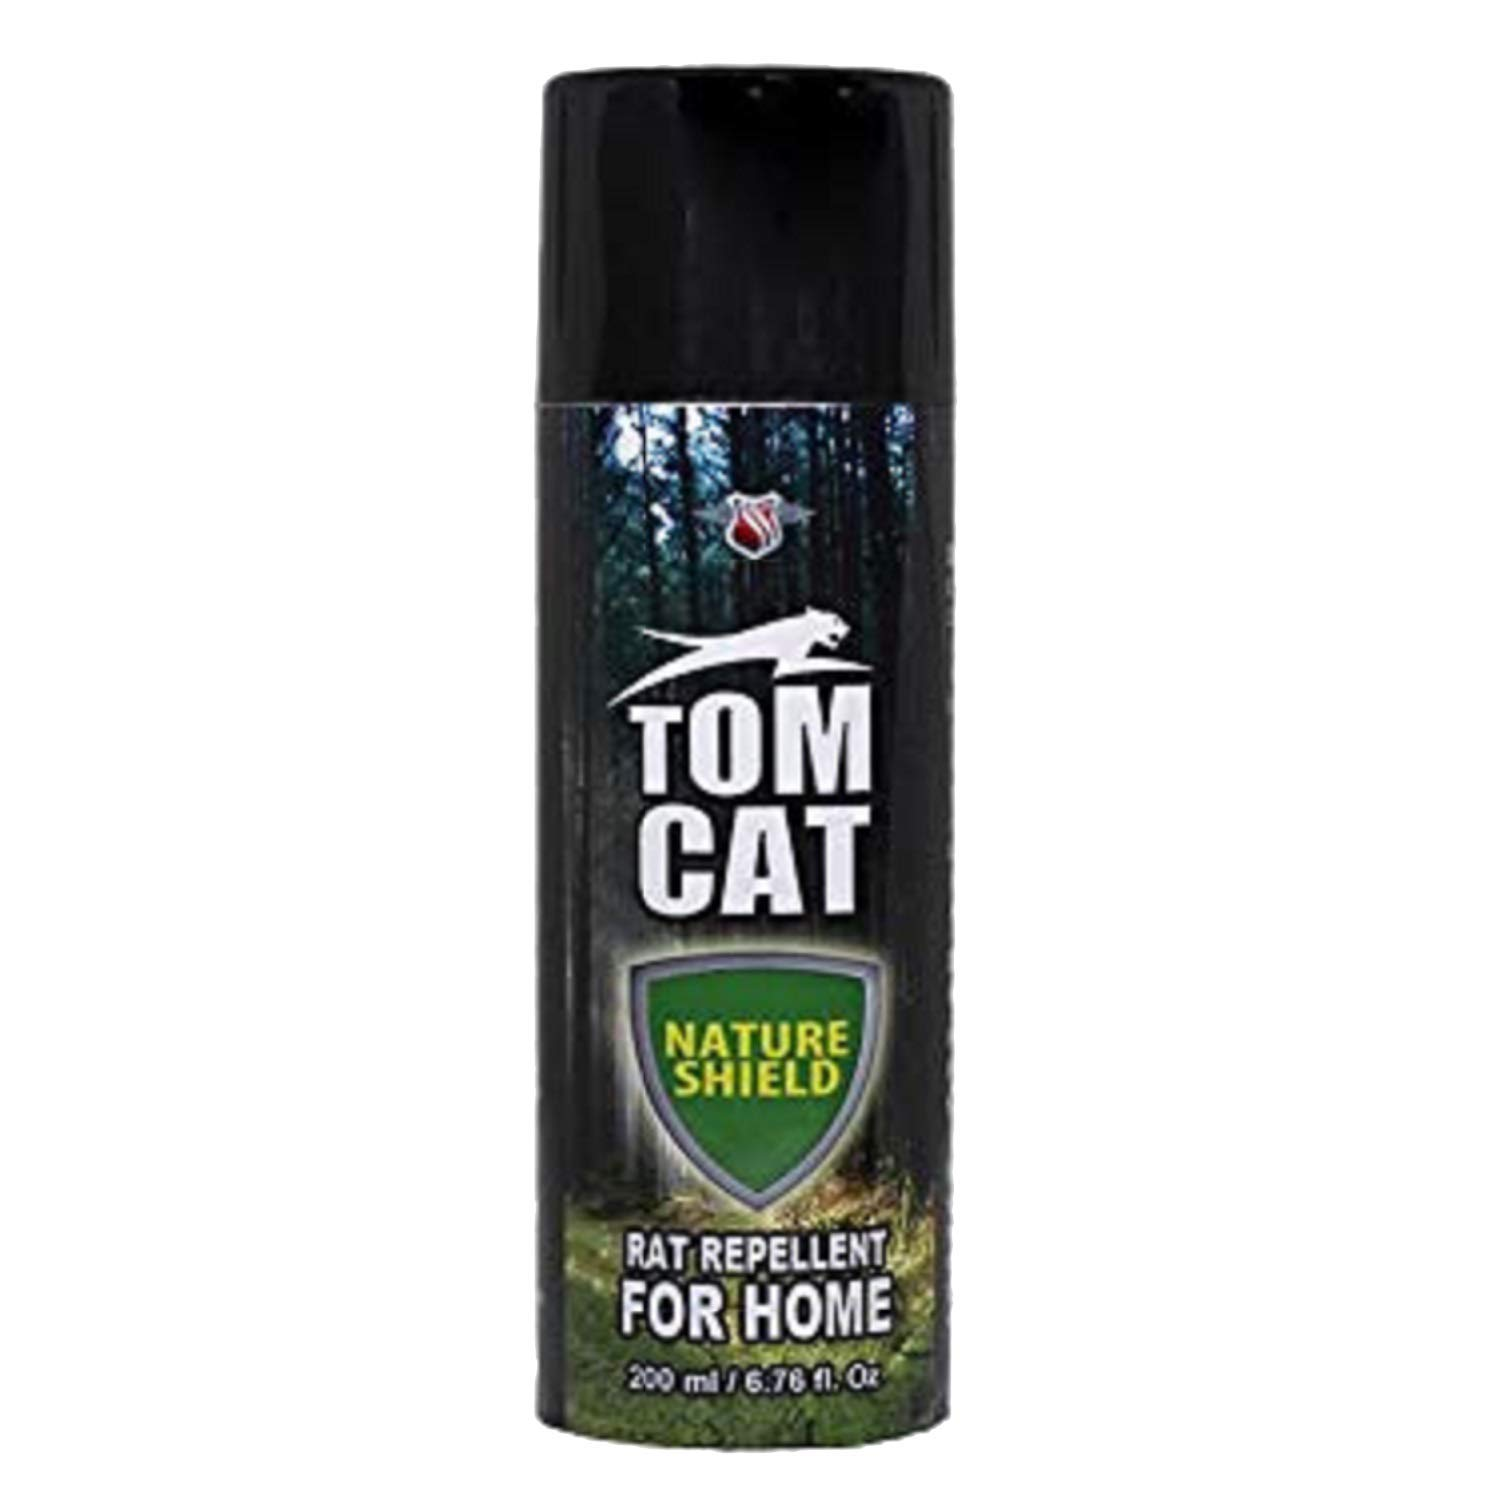 Shadow Securitronics Tom CAT No Entry Rat Repellent Spray for Home Garage Godown Highly Effective Lasts 1 Year Leak Free…